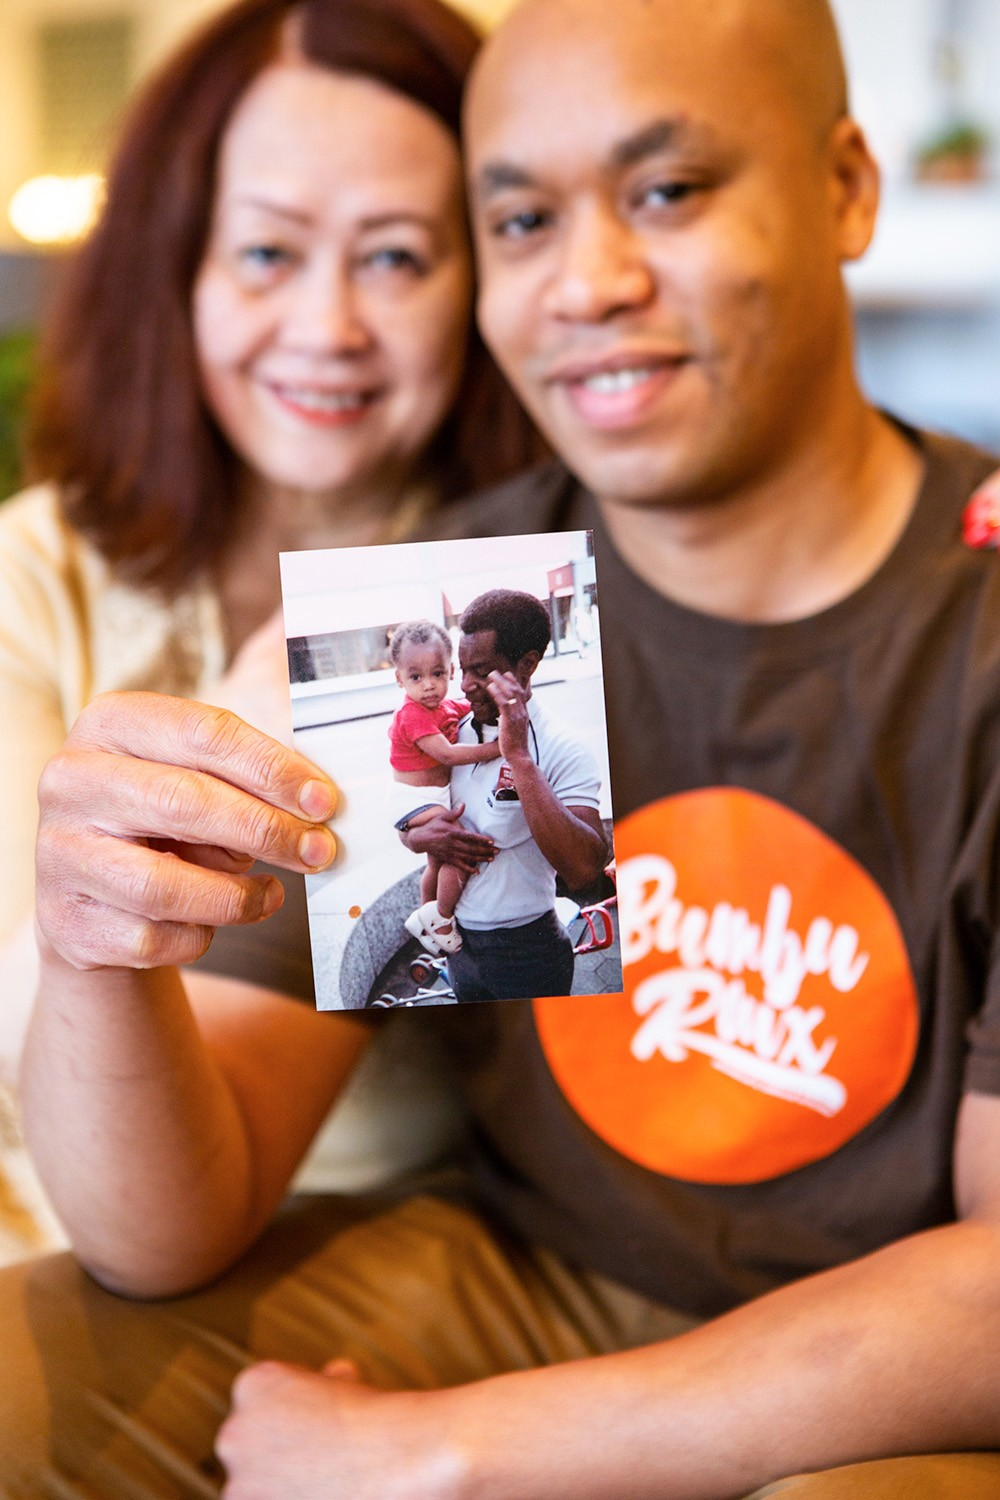 Chef Chris Reed with his mother, Priscilla. Chris holds a photo of his late father, Donald, carrying him as a child.